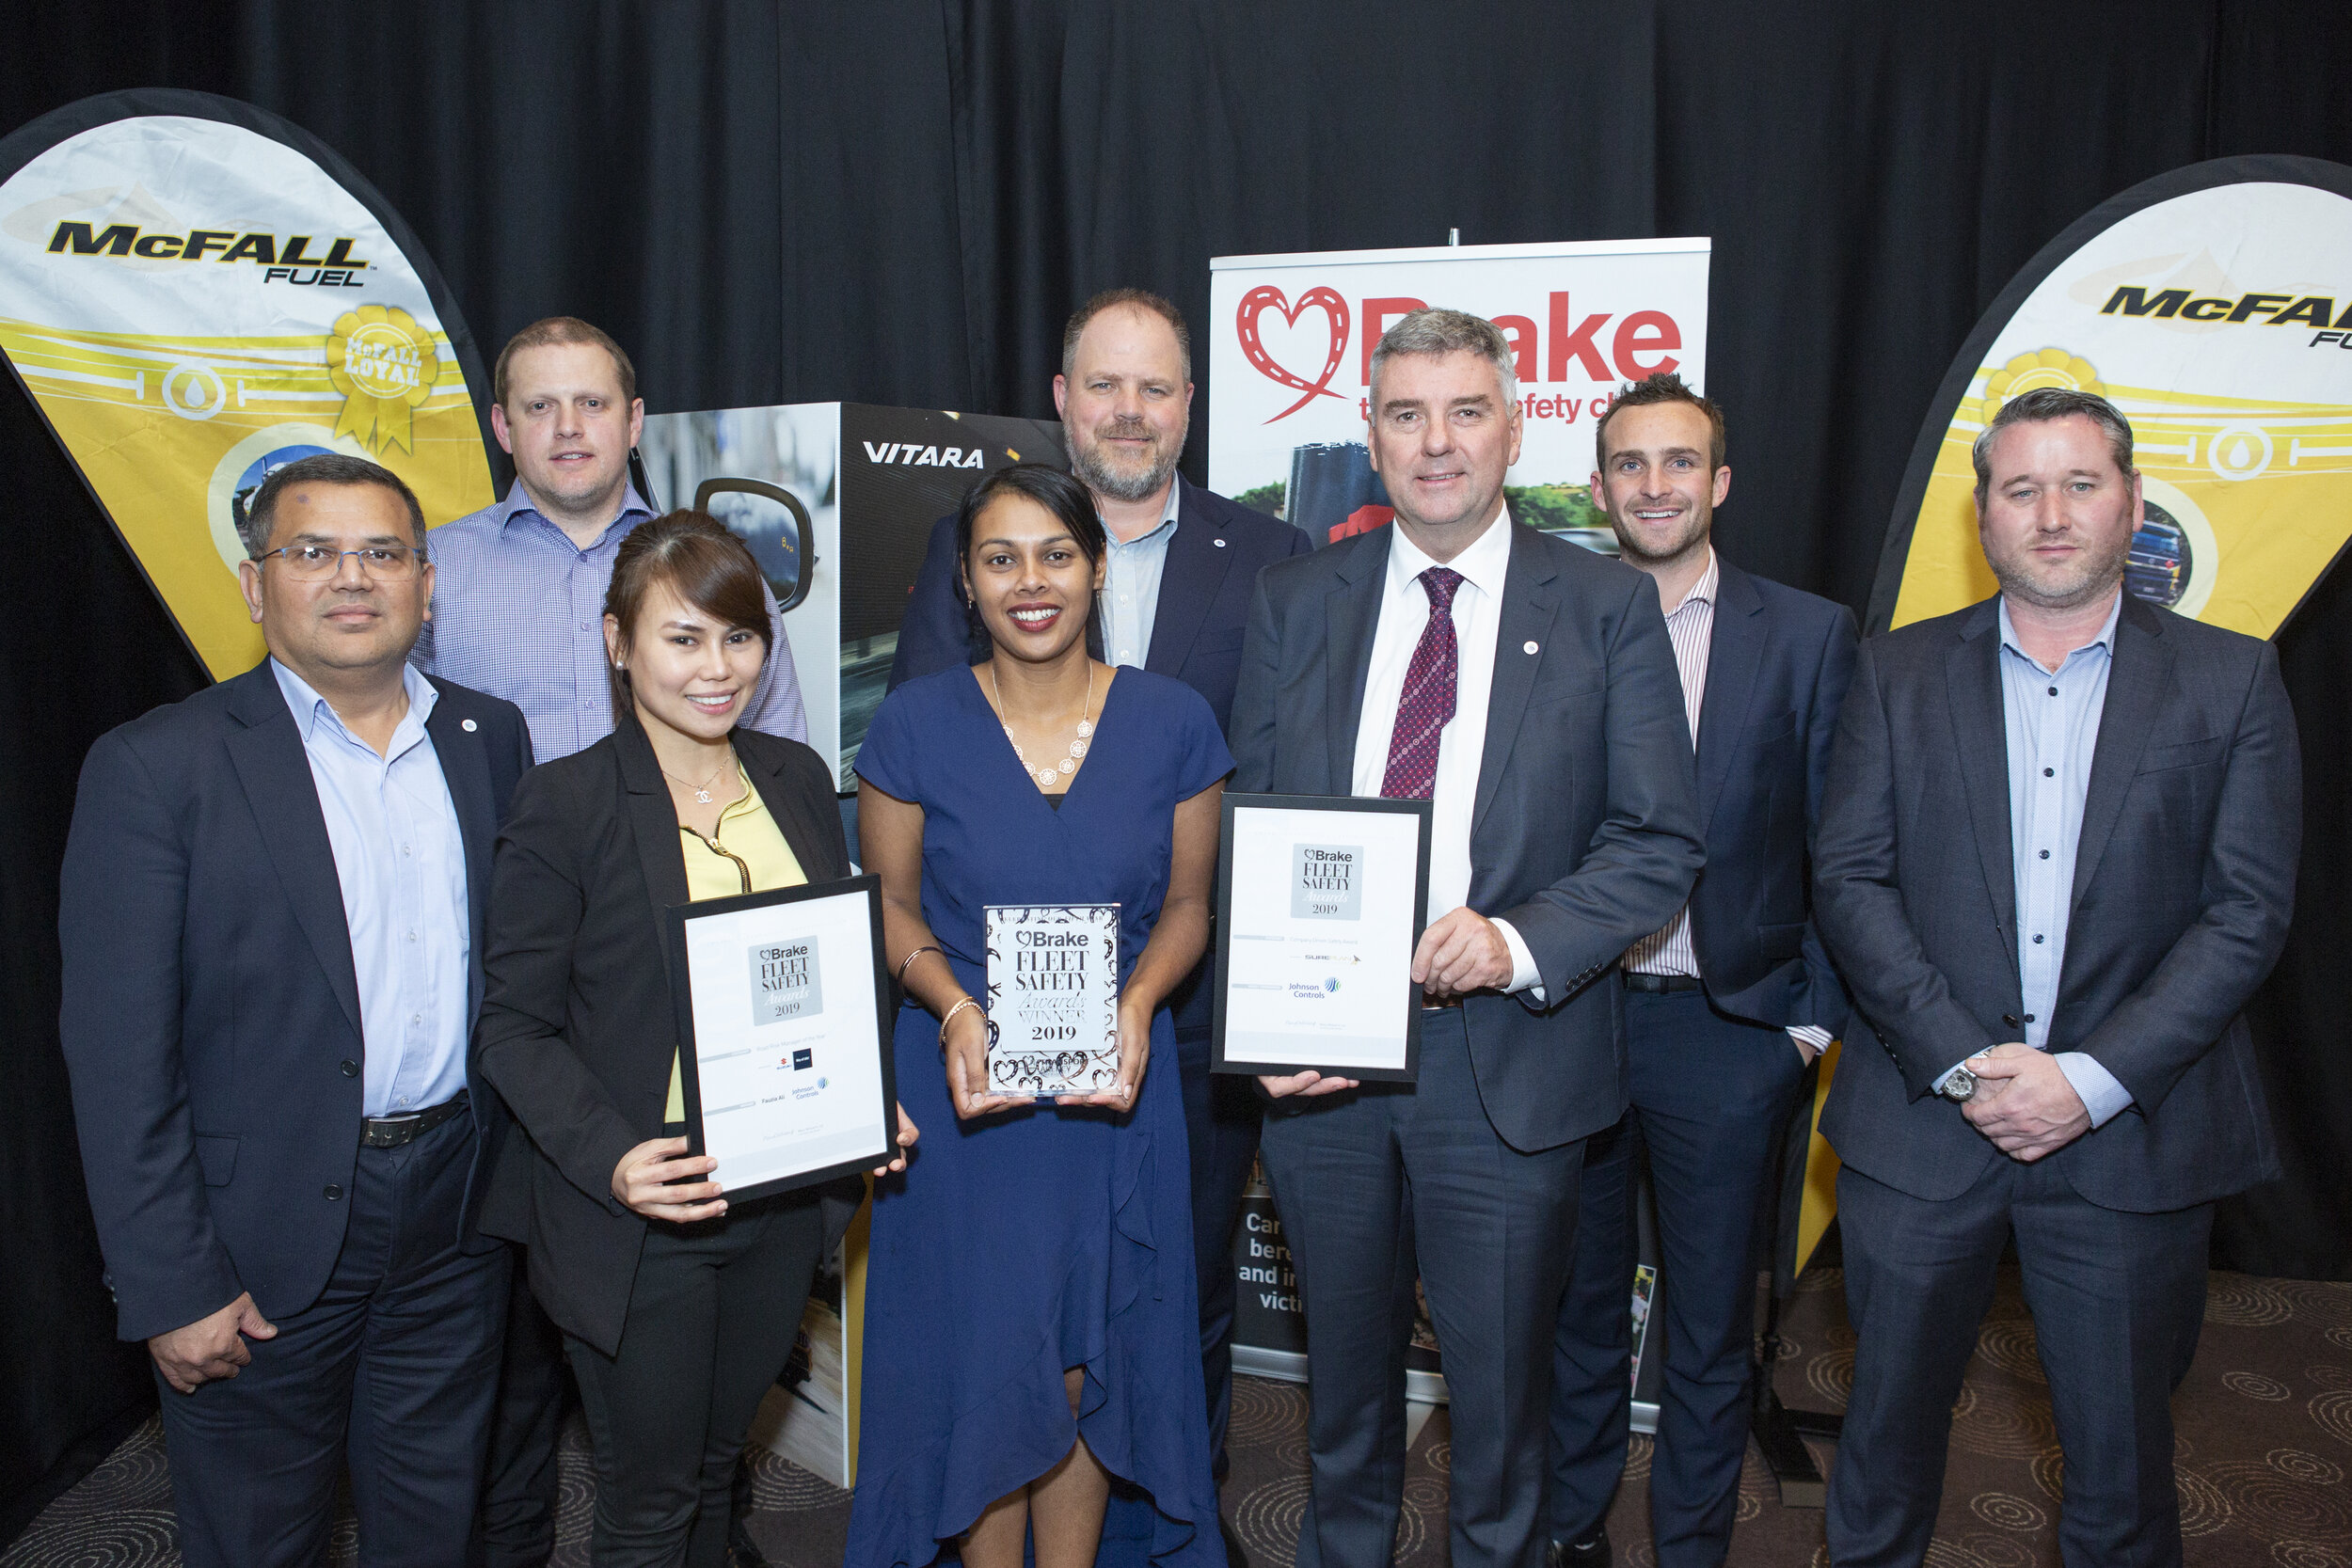 Johnson Controls receive highly commended for the Company Driver Safety Award